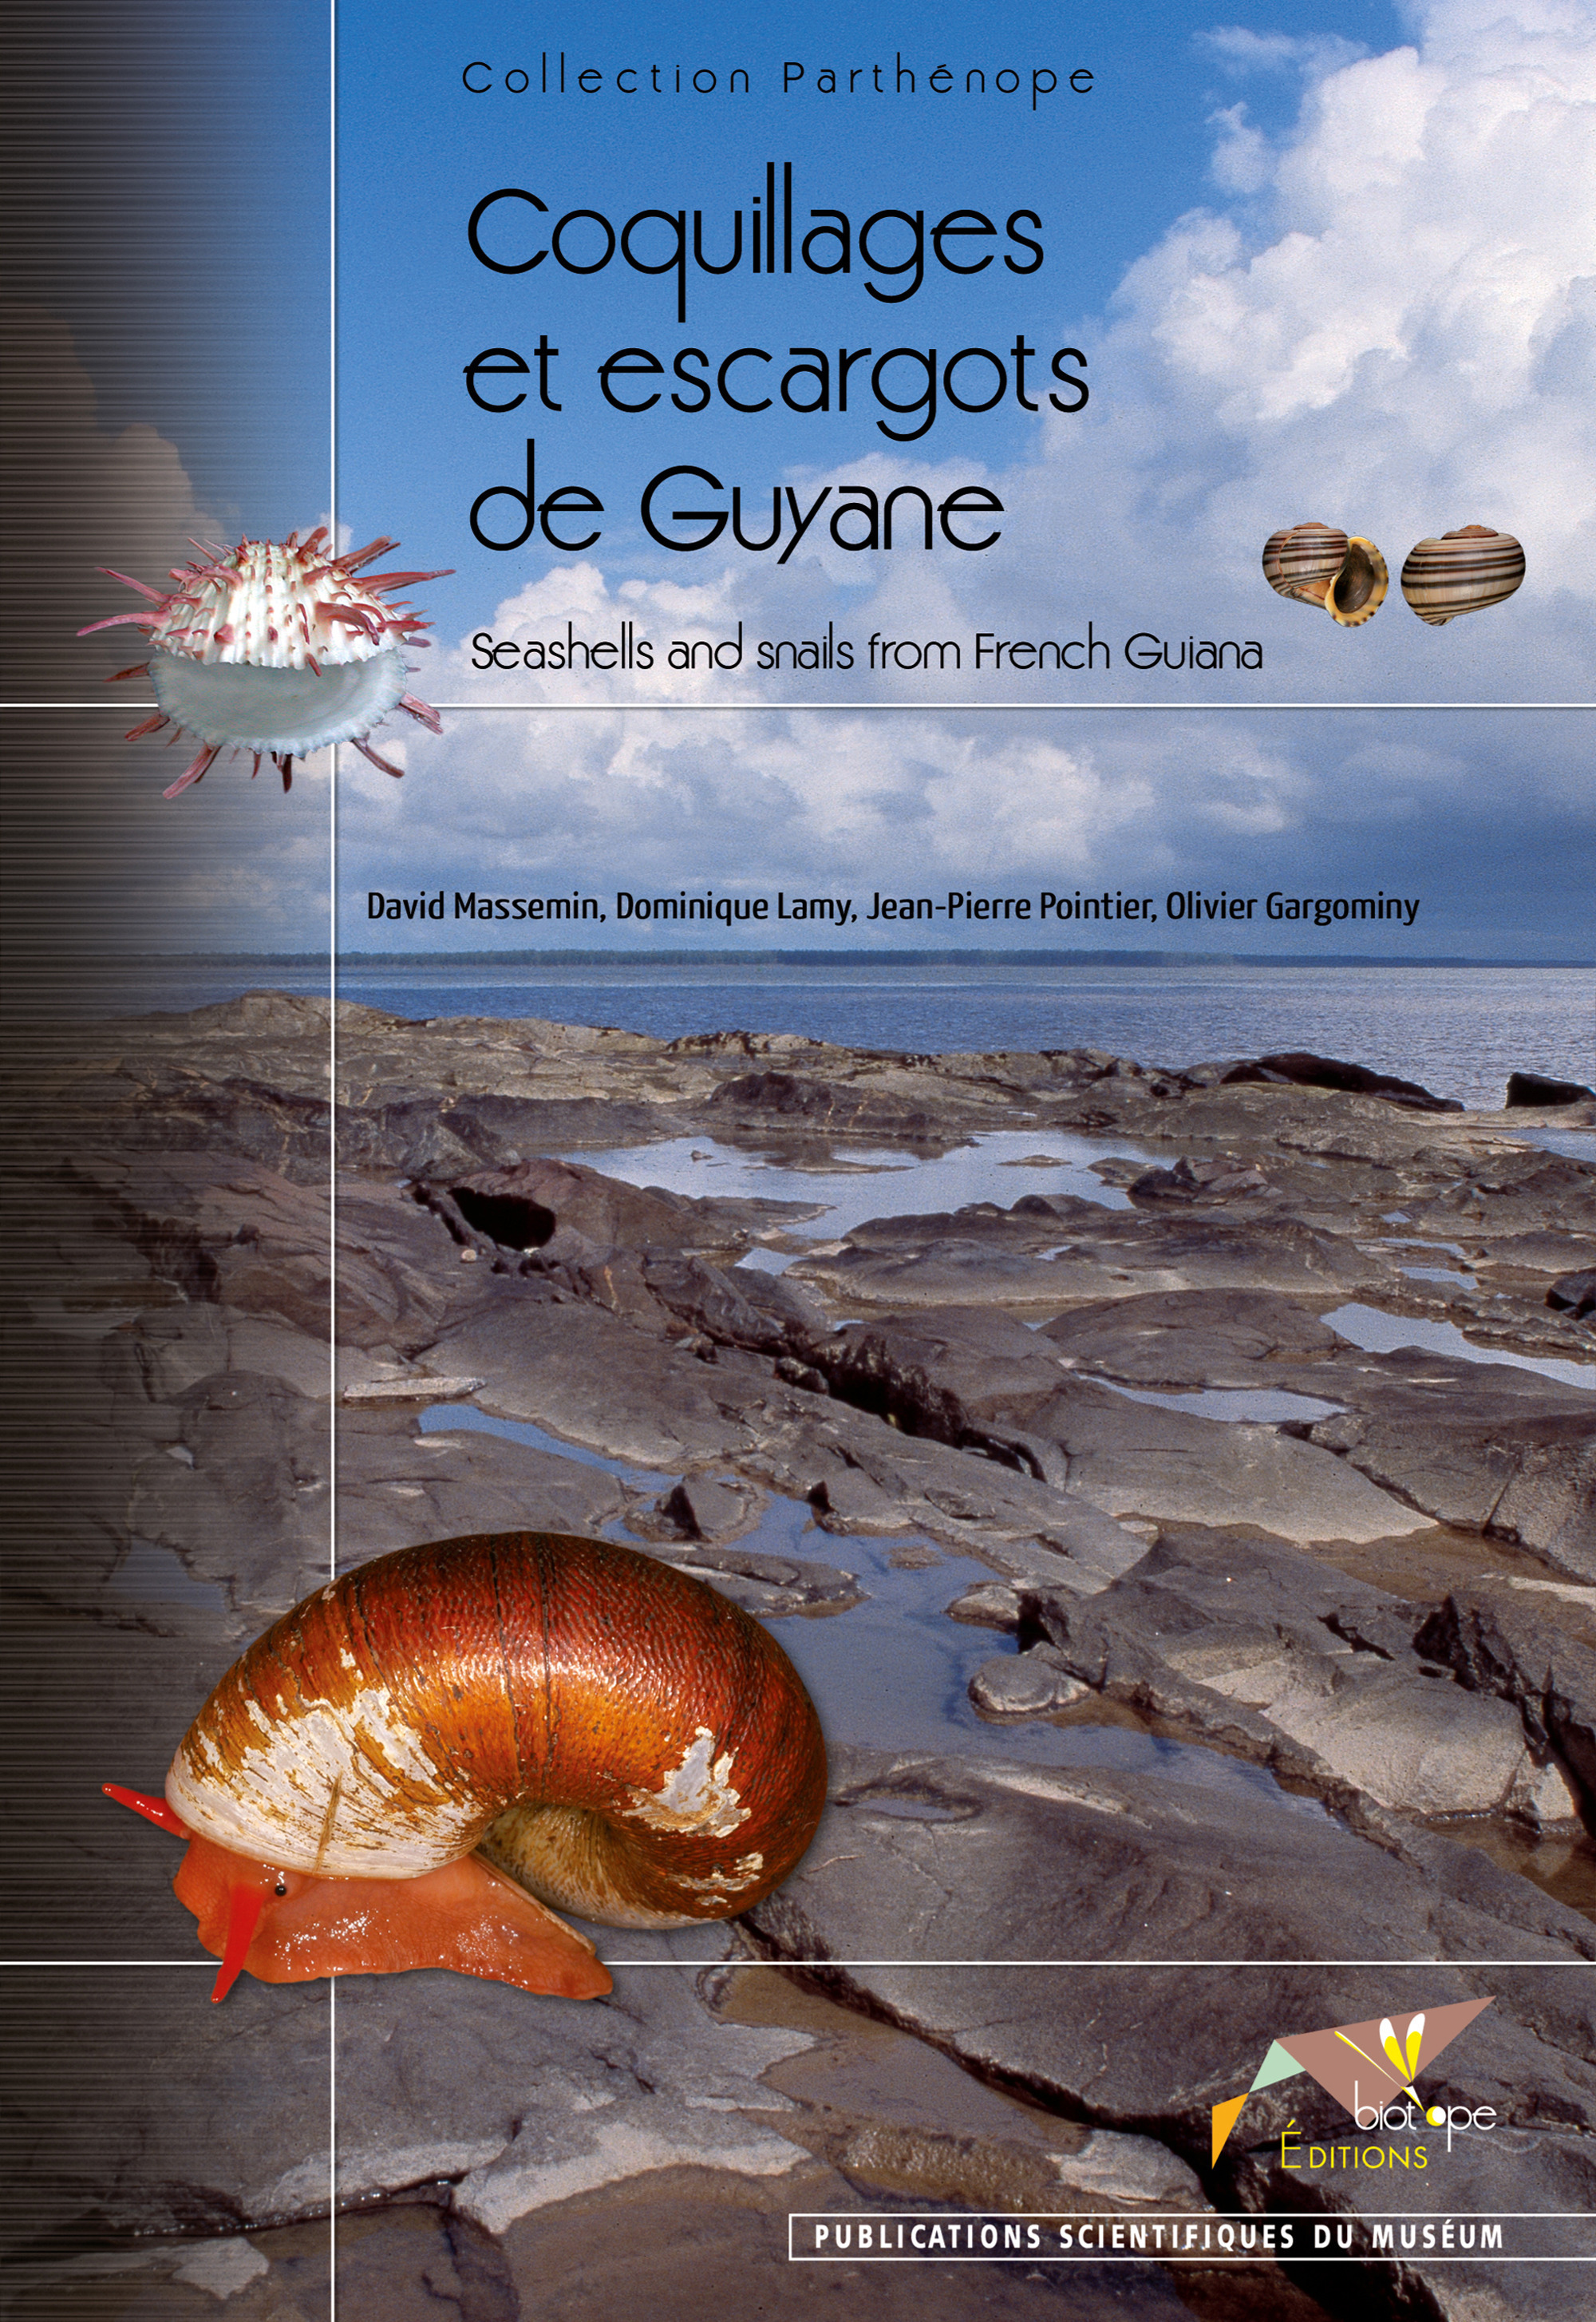 David Massemin Coquillages et escargots de Guyane